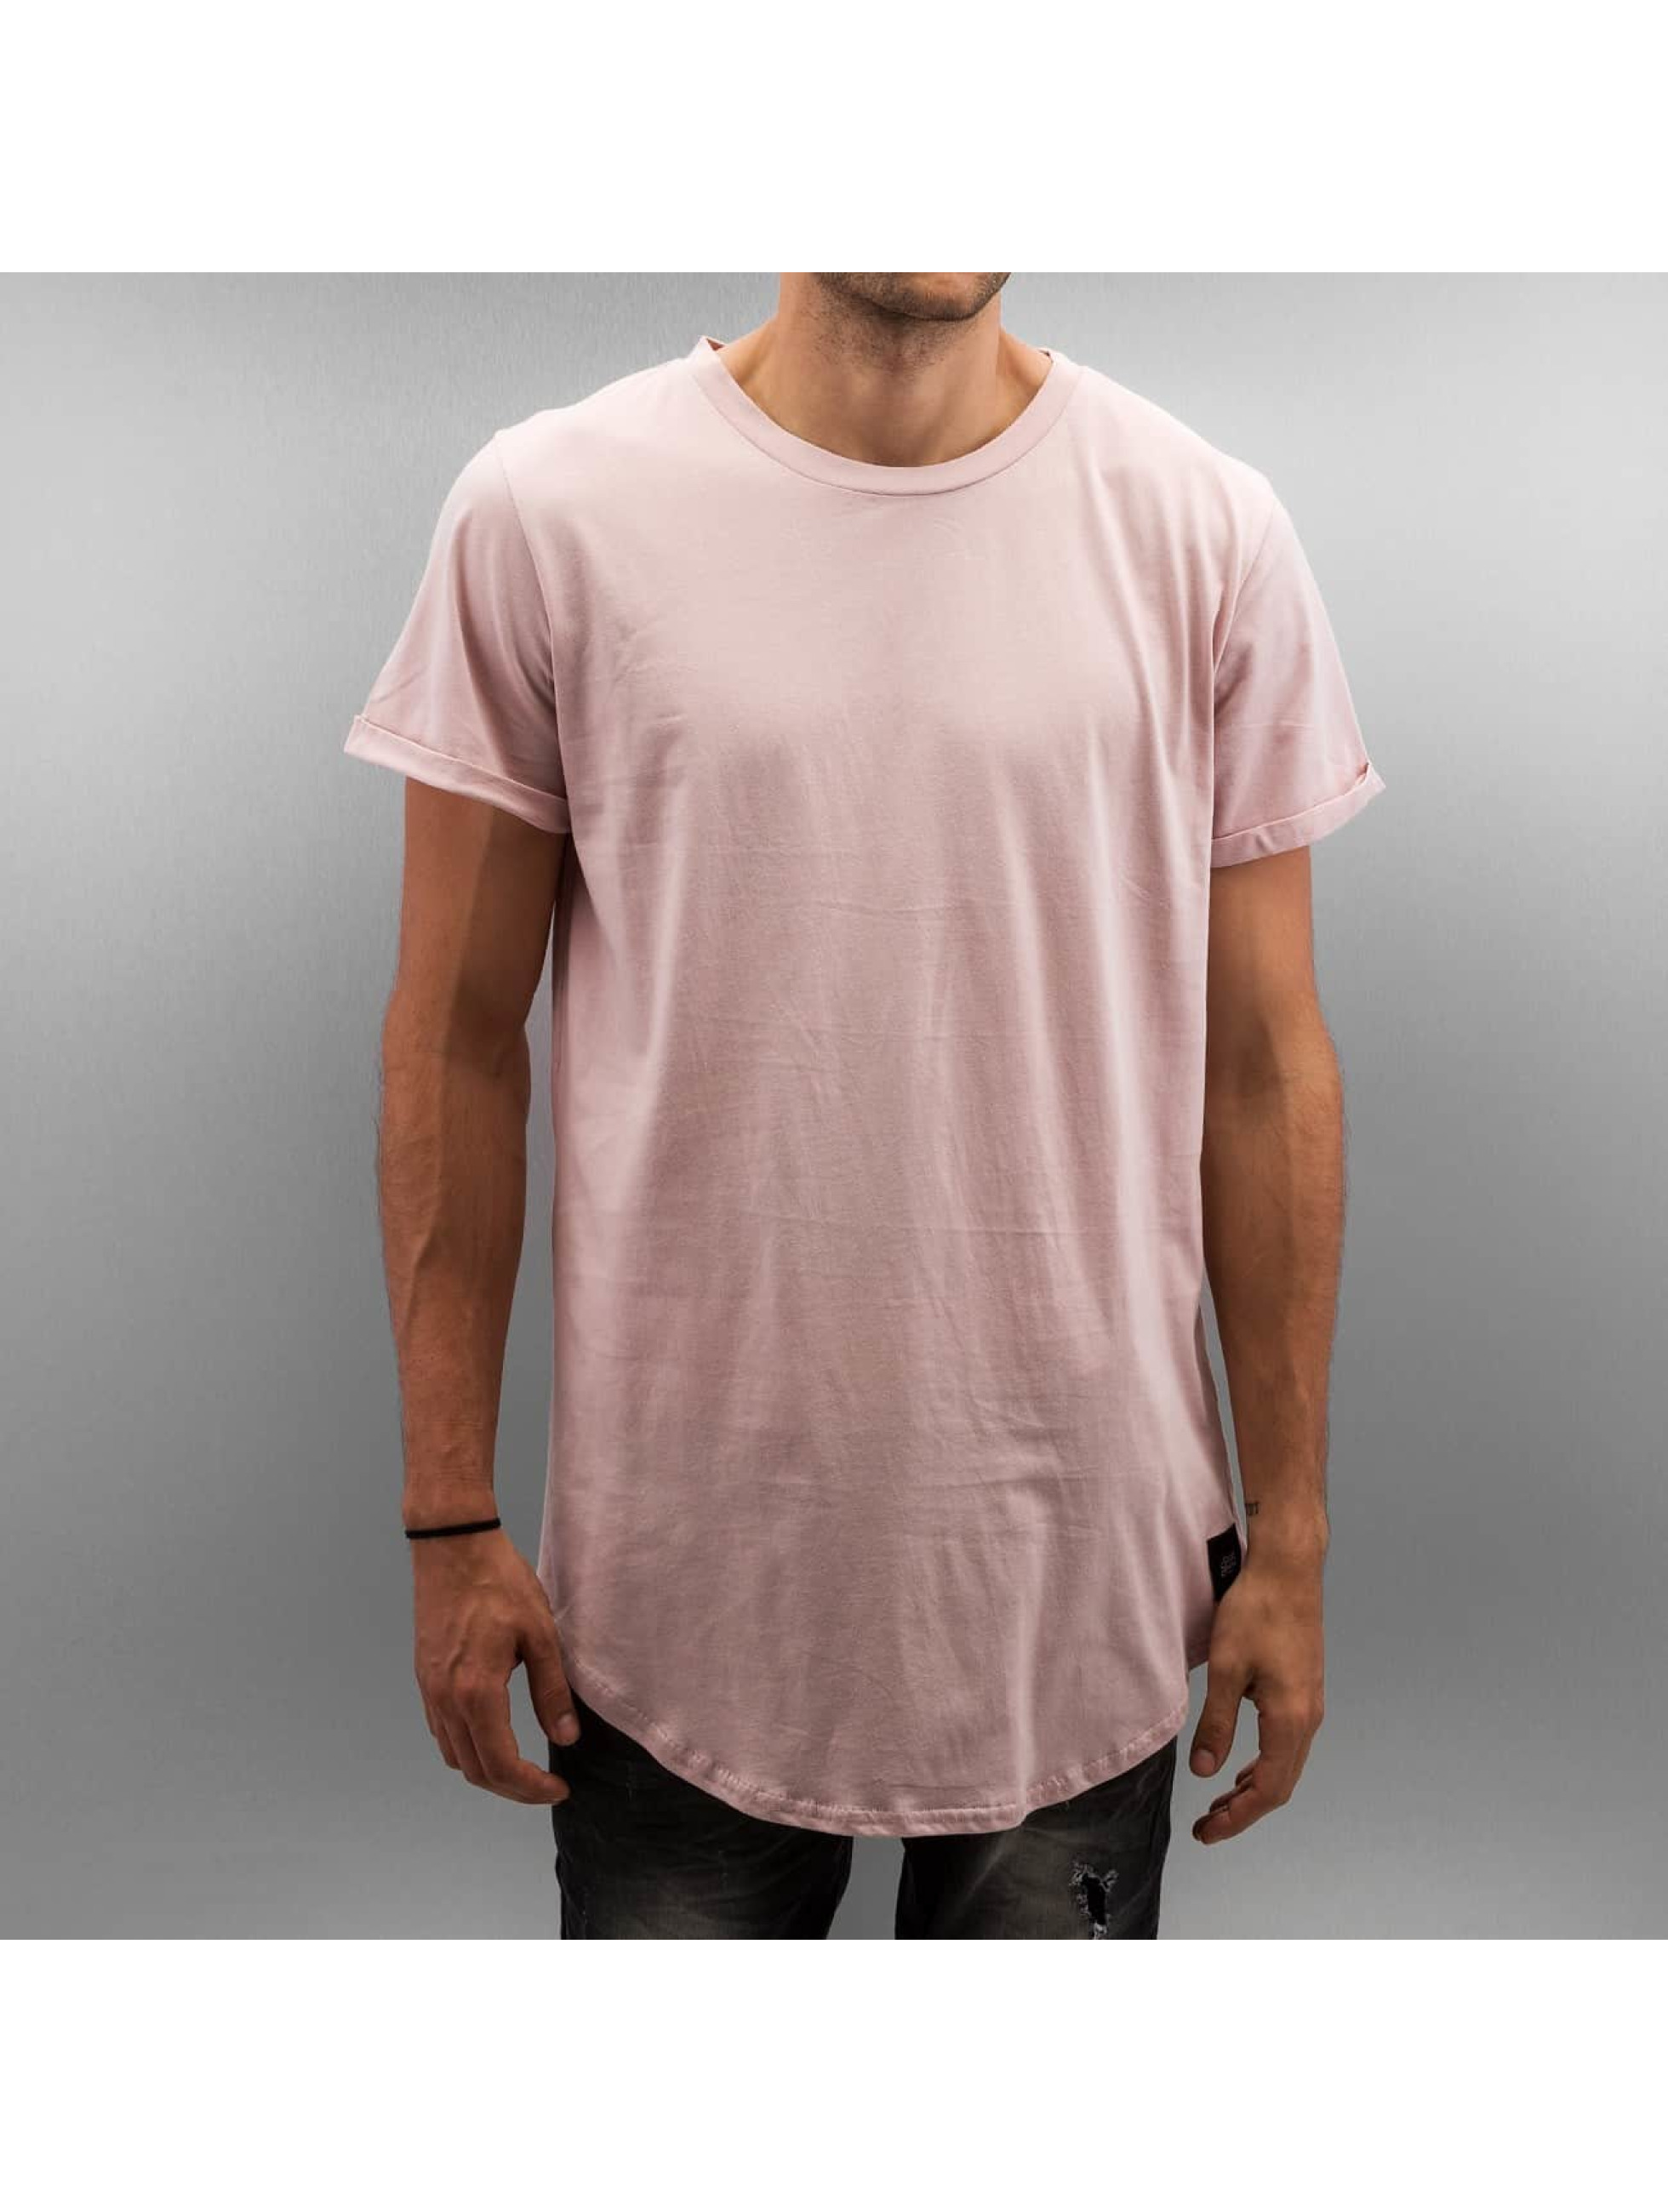 Tall Tees Rounded Bottom in rosa